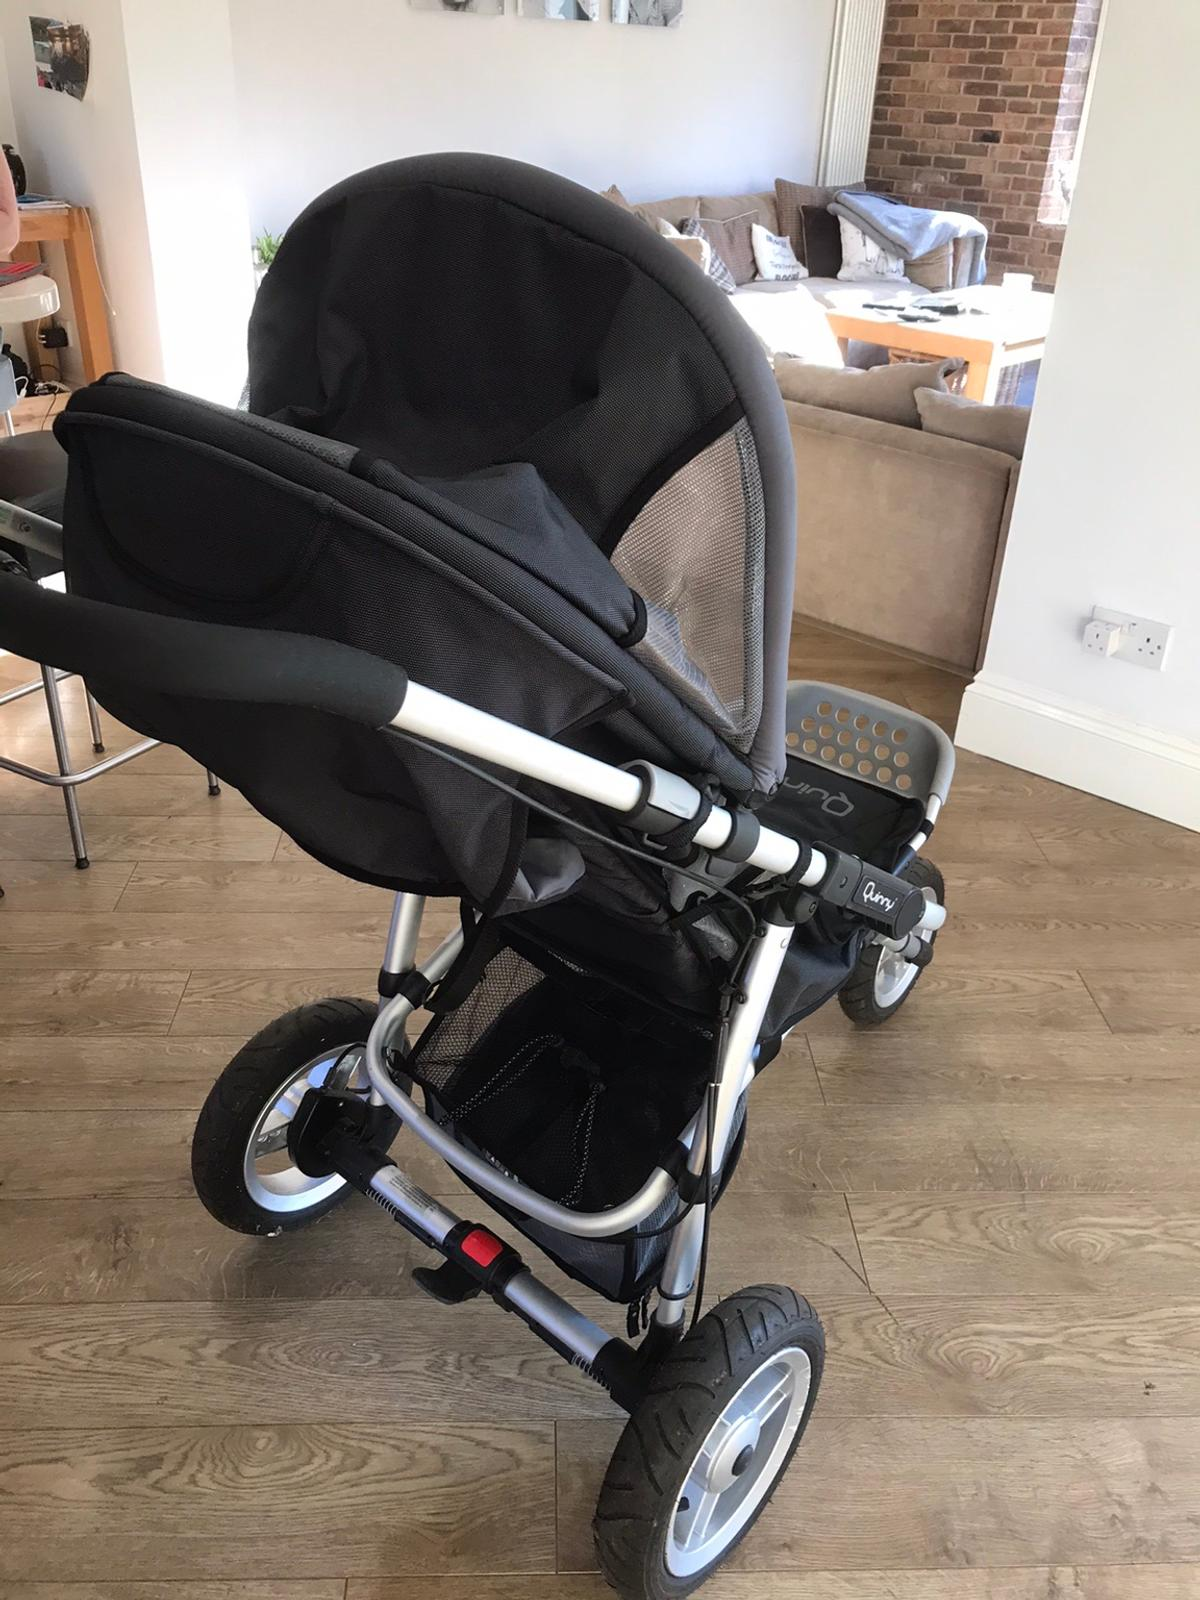 3 wheel pushchair with pneumatic tyres. Was used for jogging with the baby . In excellent condition Cost over £300 new